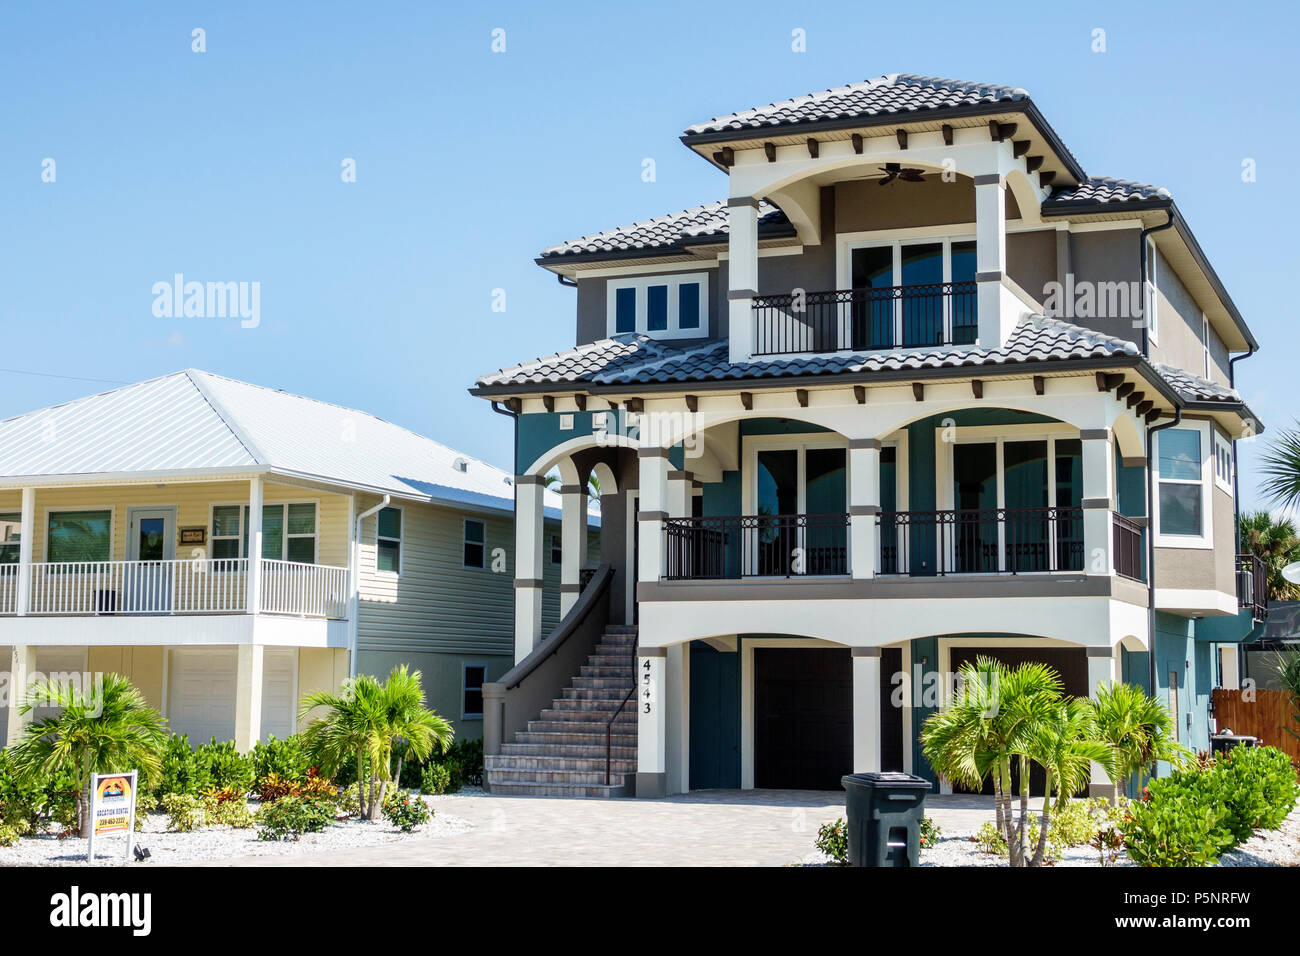 Fort Ft. Myers Florida Beach house home residence beachfront real estate balcony three-story rental - Stock Image